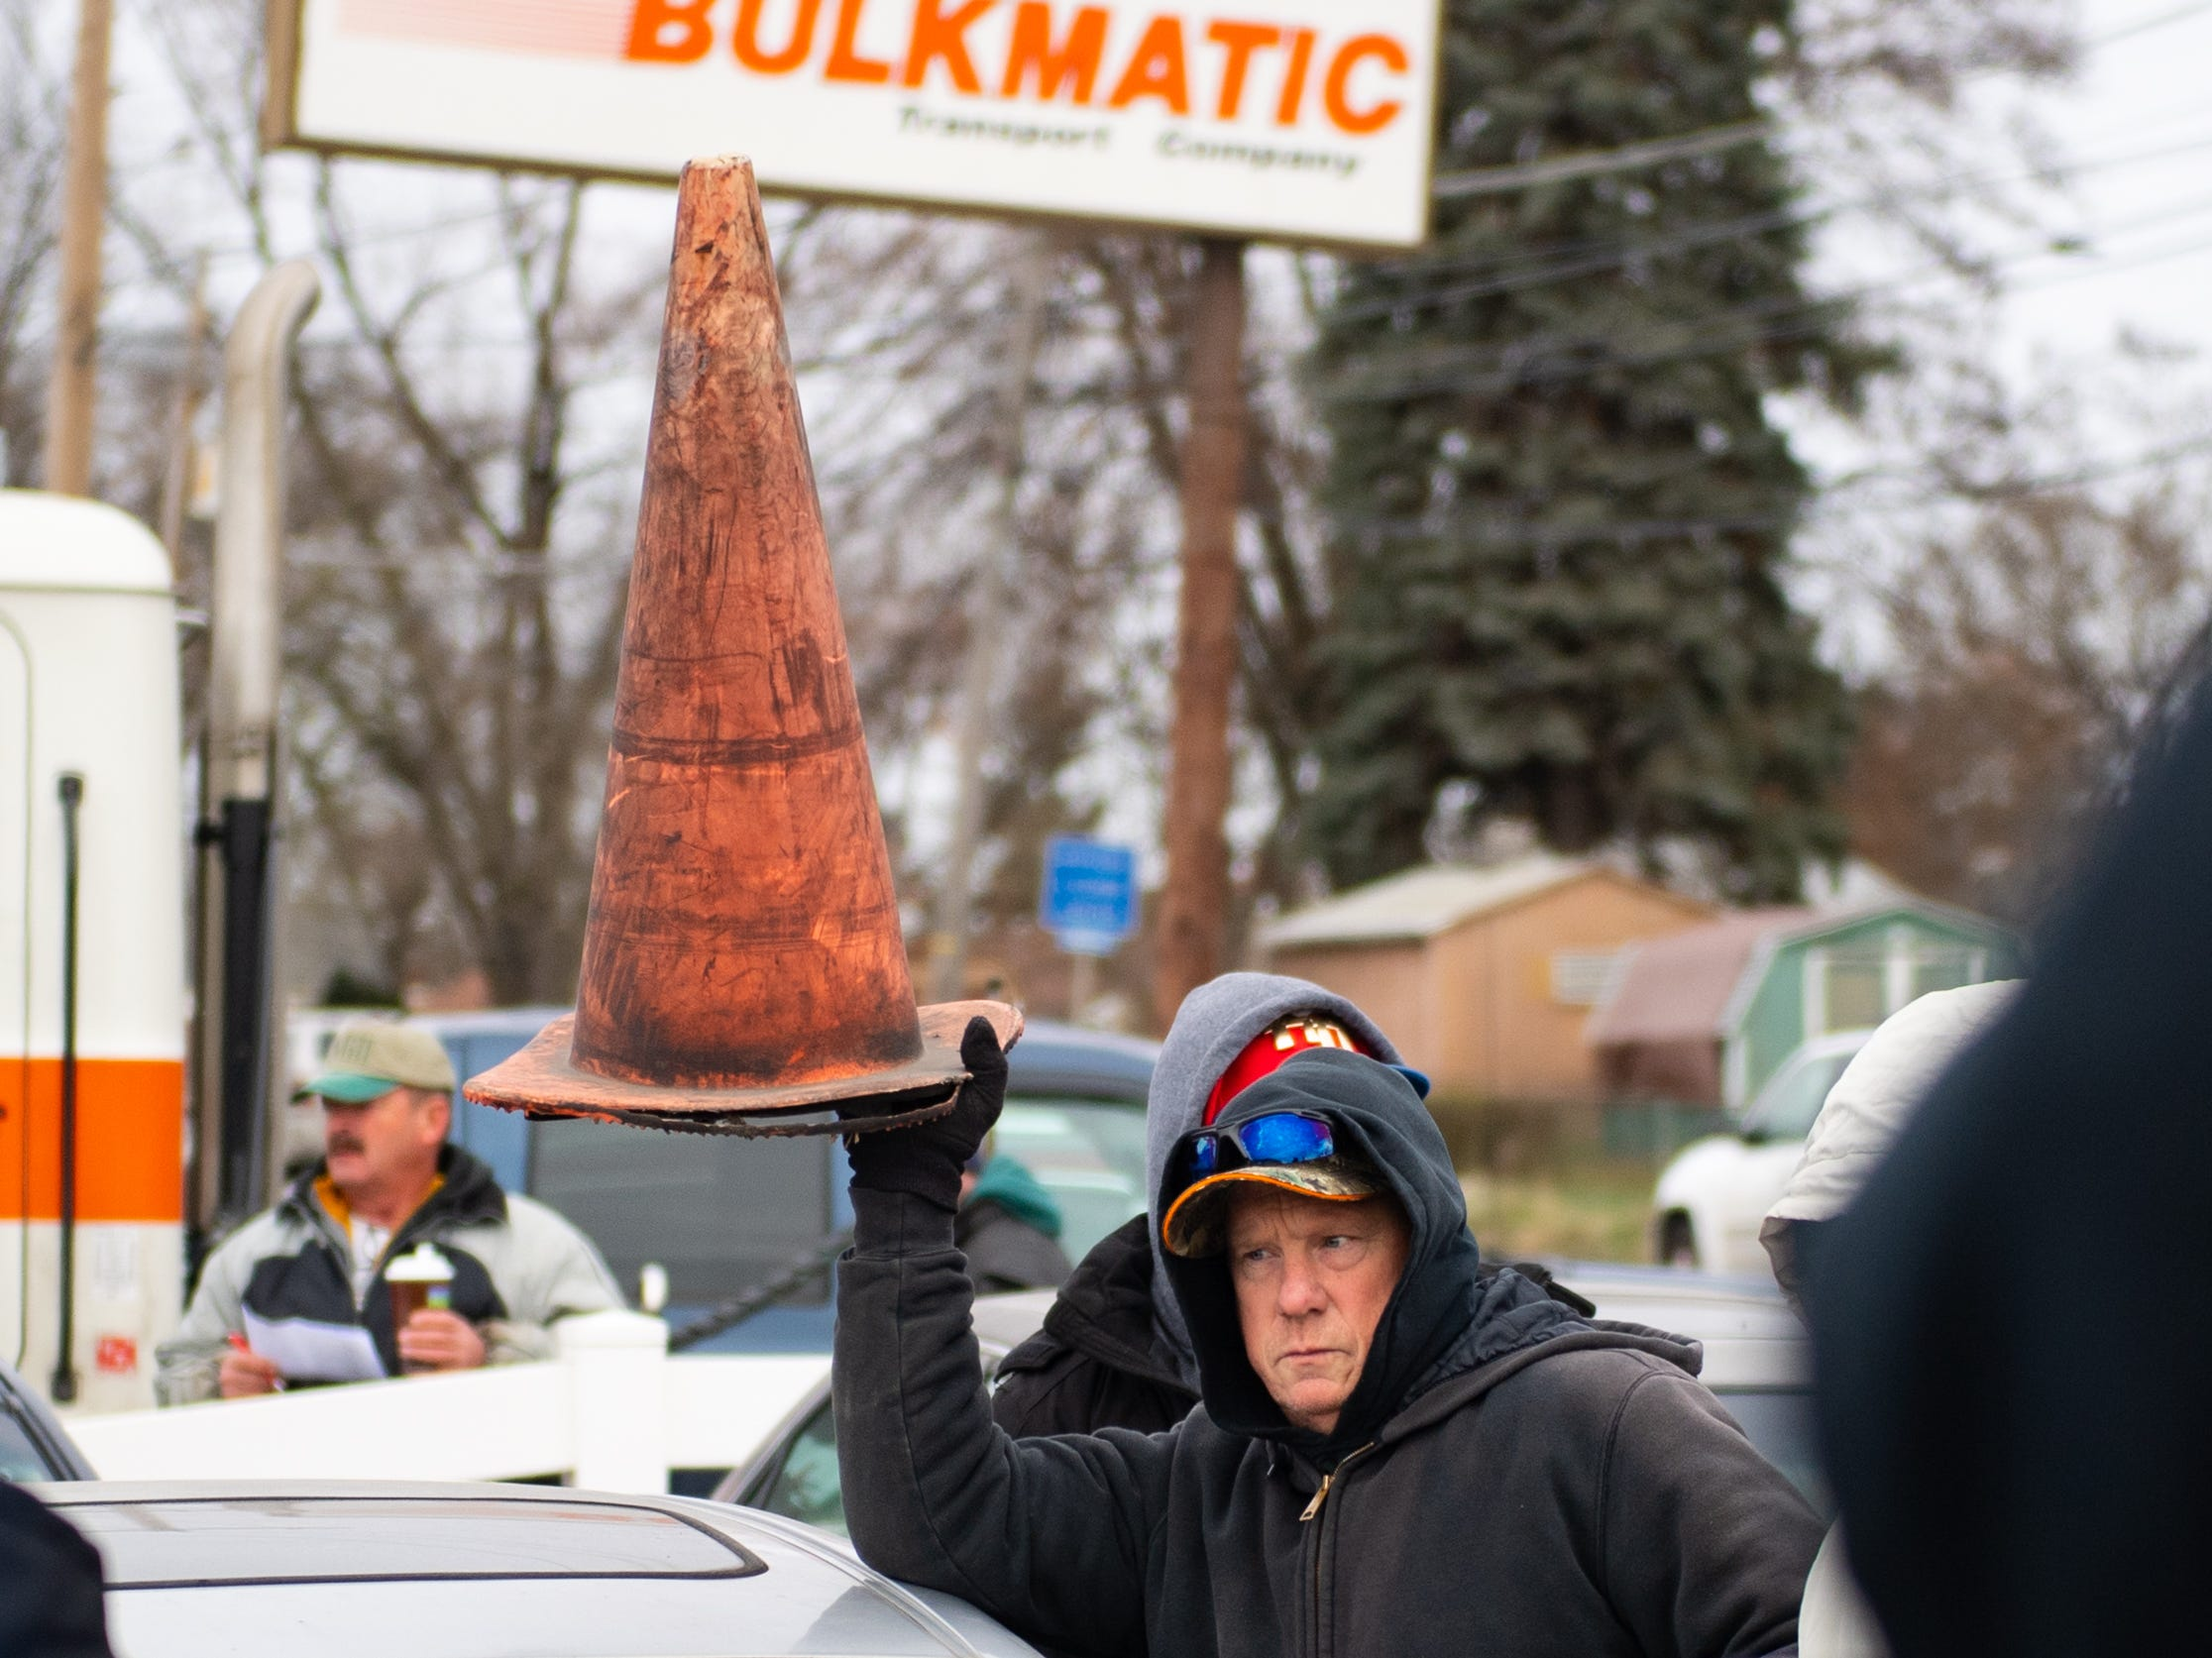 An orange cone is held over cars being bid on at the moment during the York County Drug Task Force auction on Black Friday, November 23, 2018.